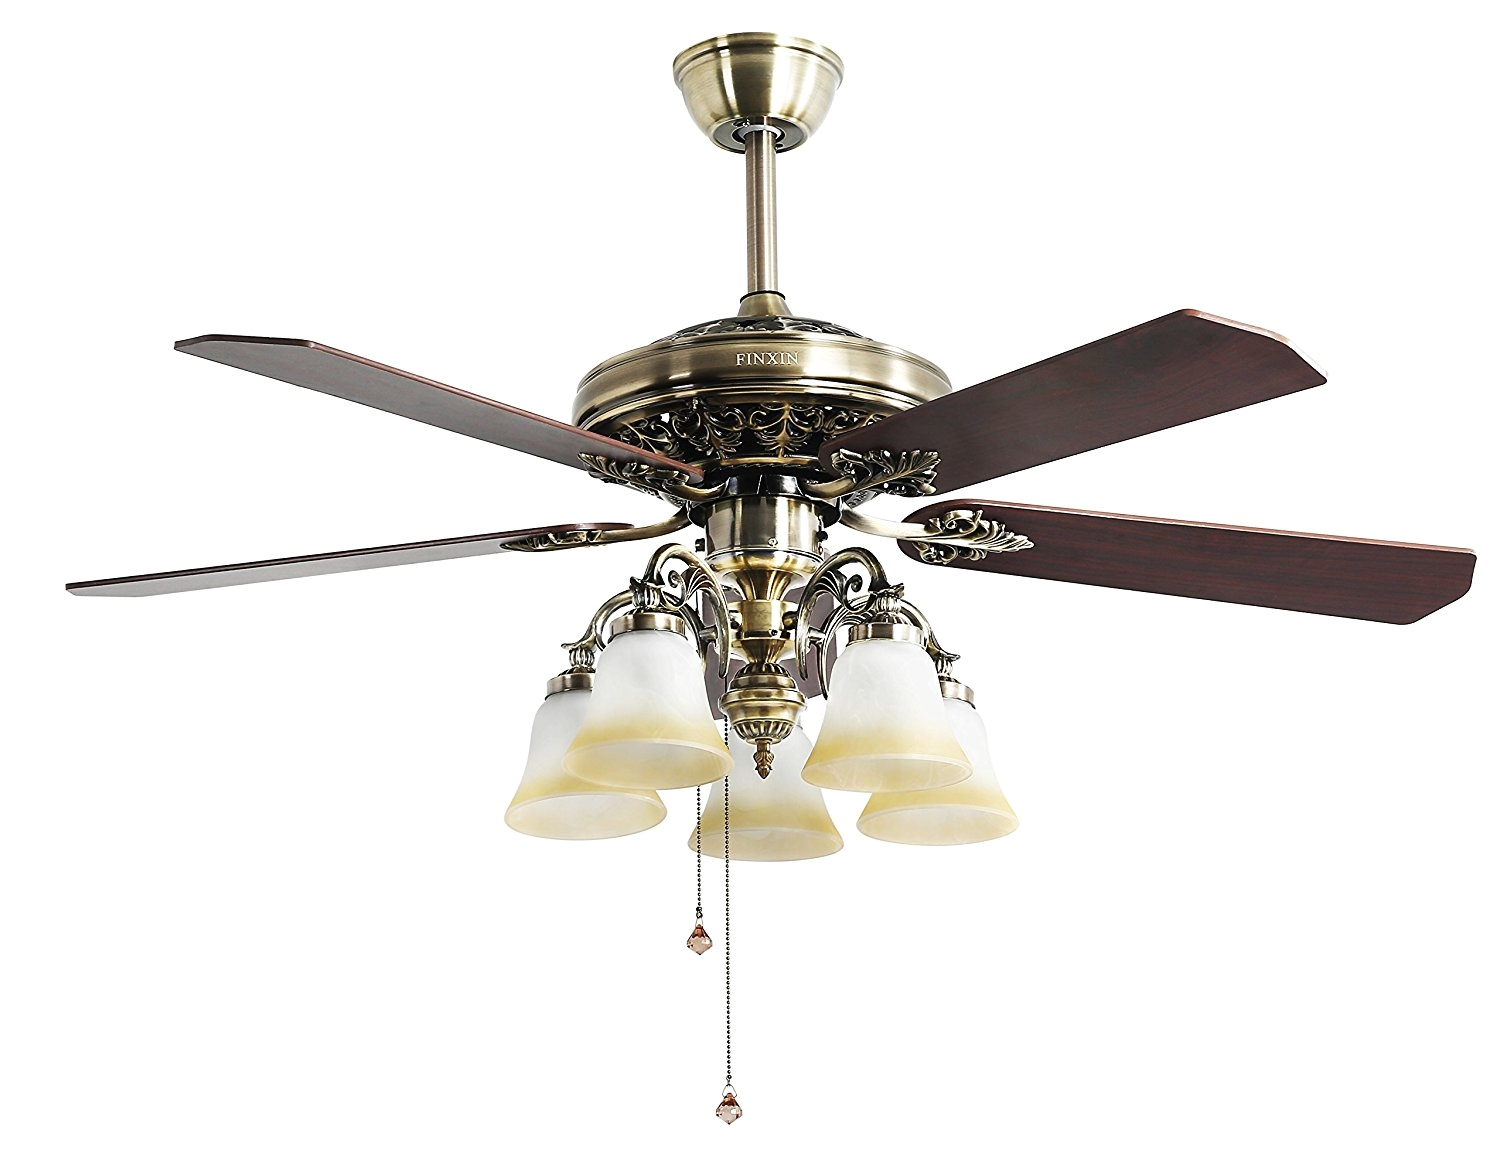 indoor ceiling fan light fixtures finxin fxcf03 new style new bronze remote led 52 ceiling fans for bedroom living room dining room including motor